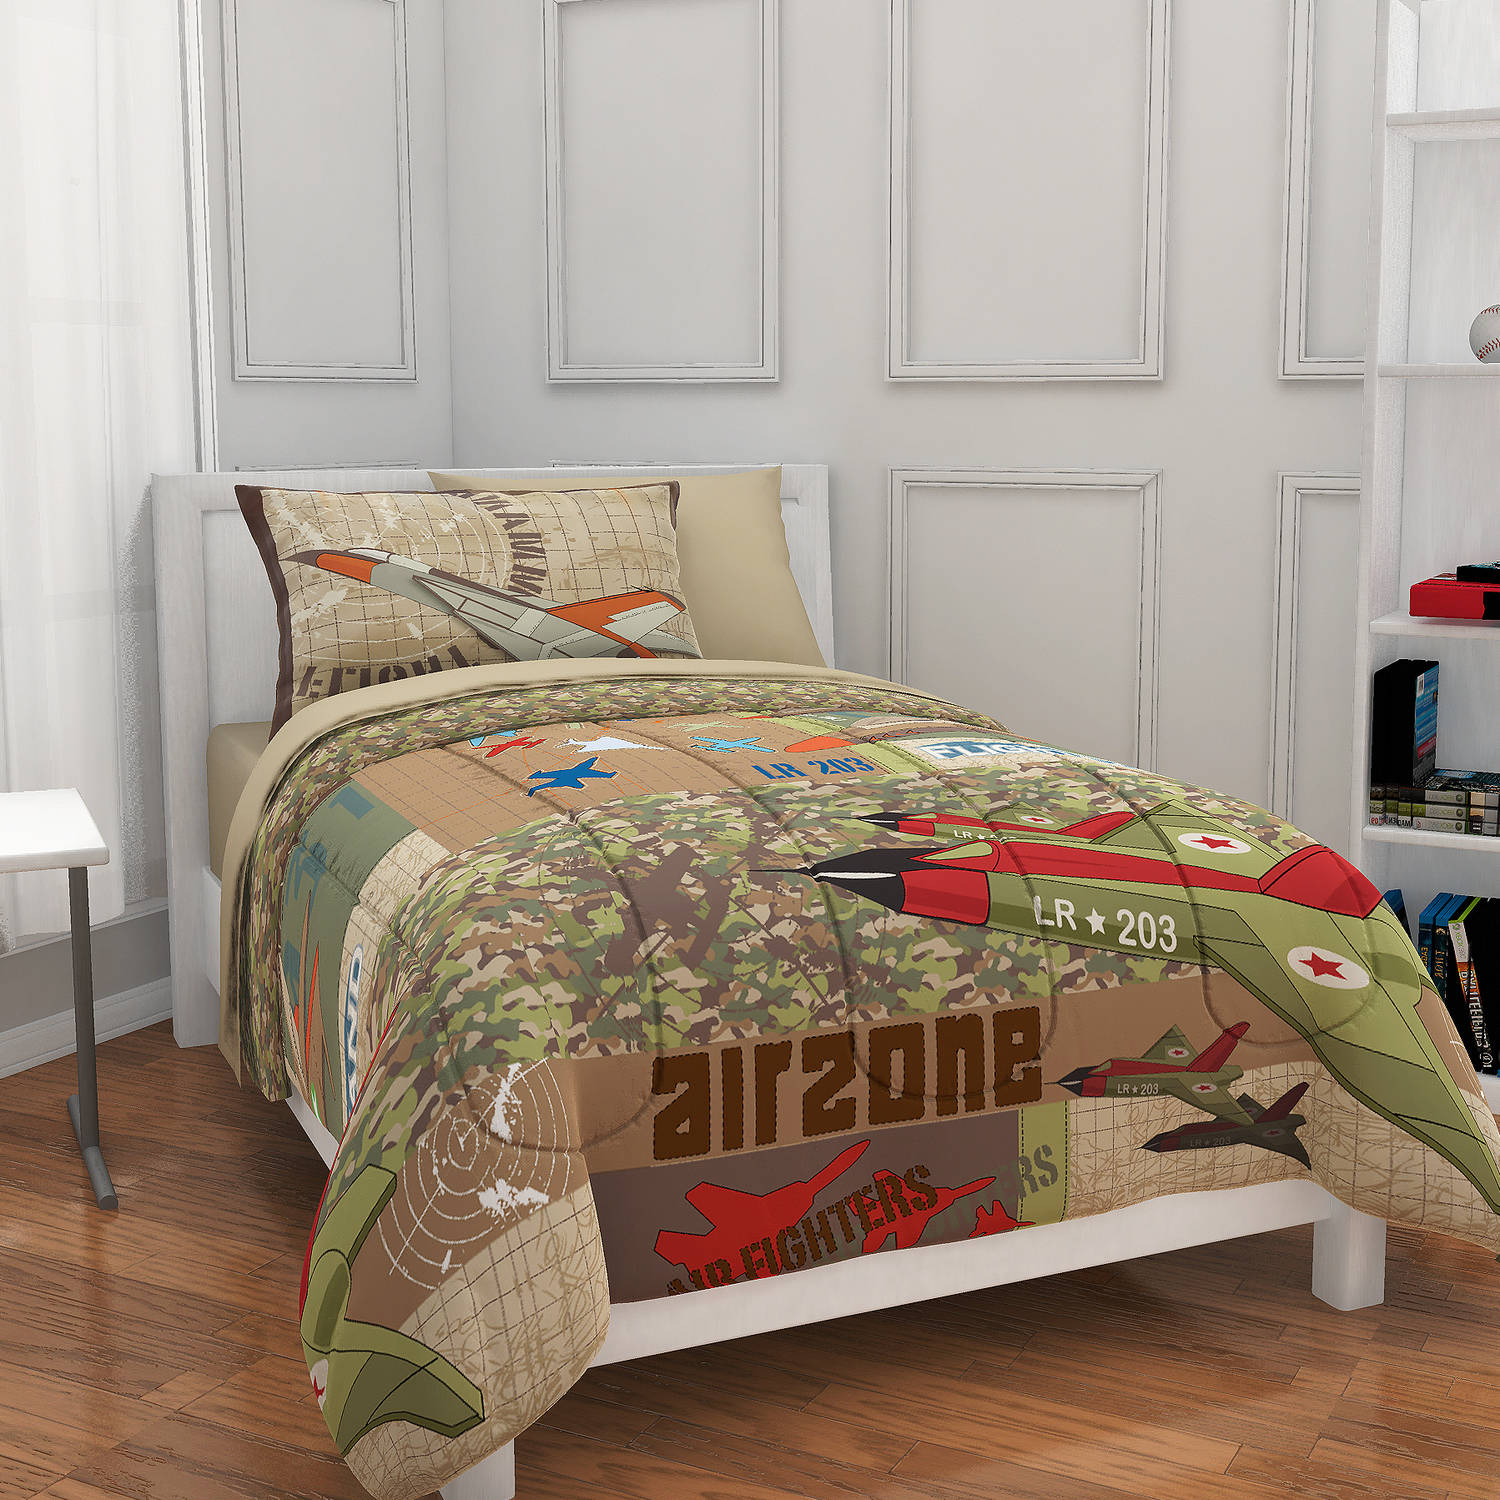 Mainstays Kids Airzone Bed in a Bag Bedding Set by Idea Nuova